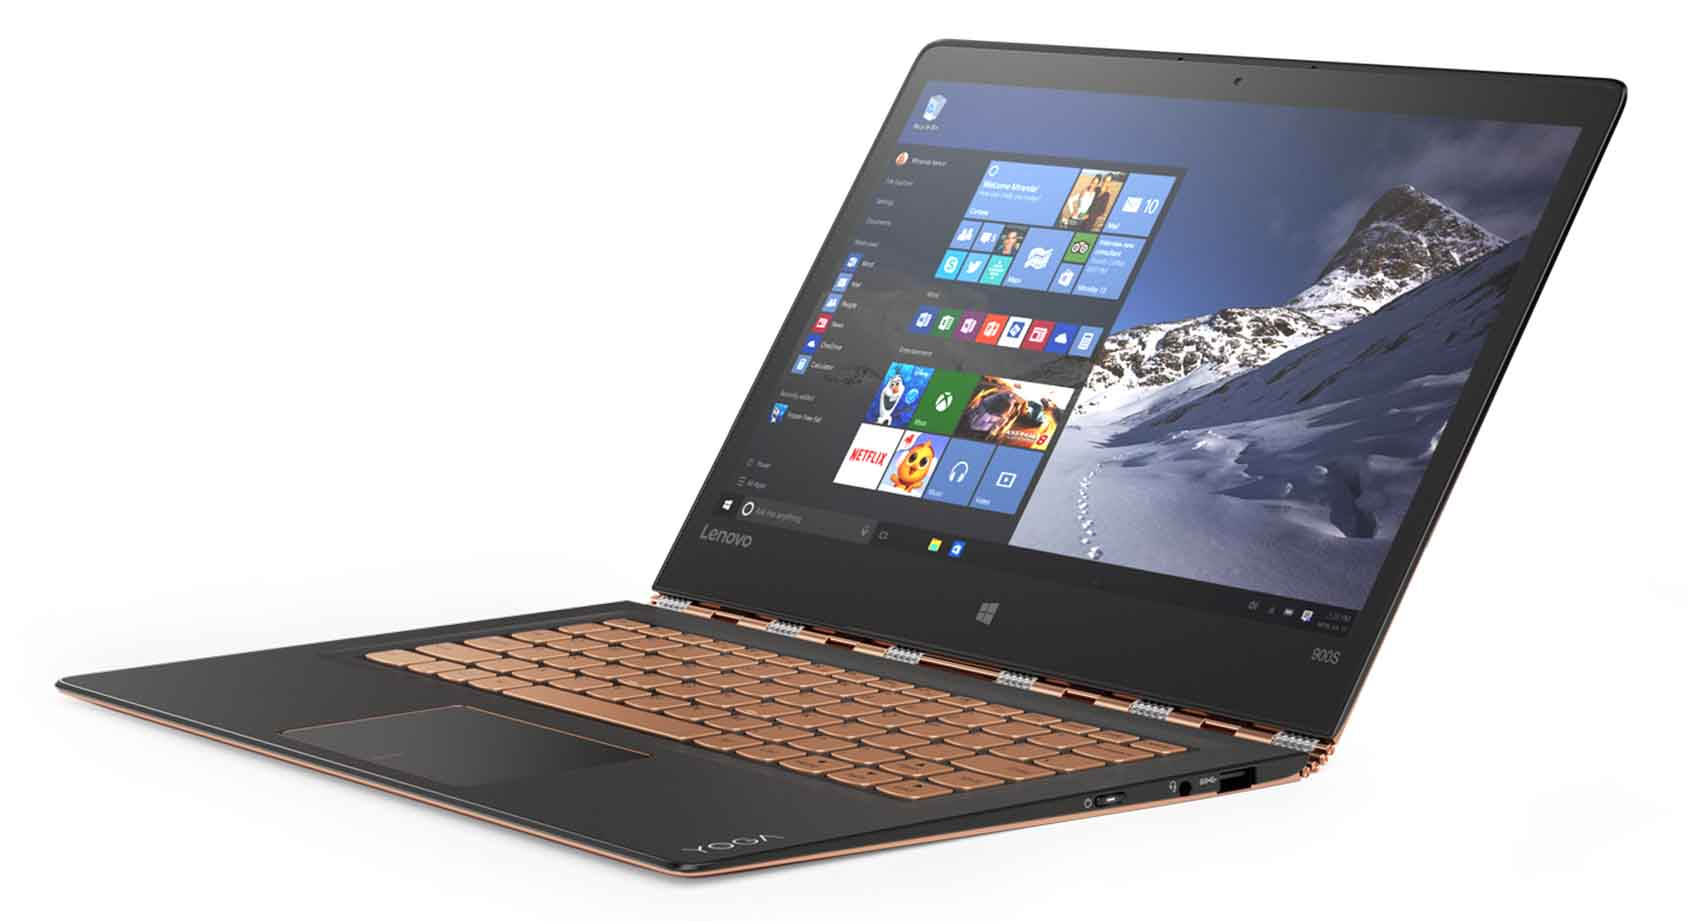 Portátiles ligeros Lenovo YOGA 900S in Gold_Using Windows 10 in Laptop Mode